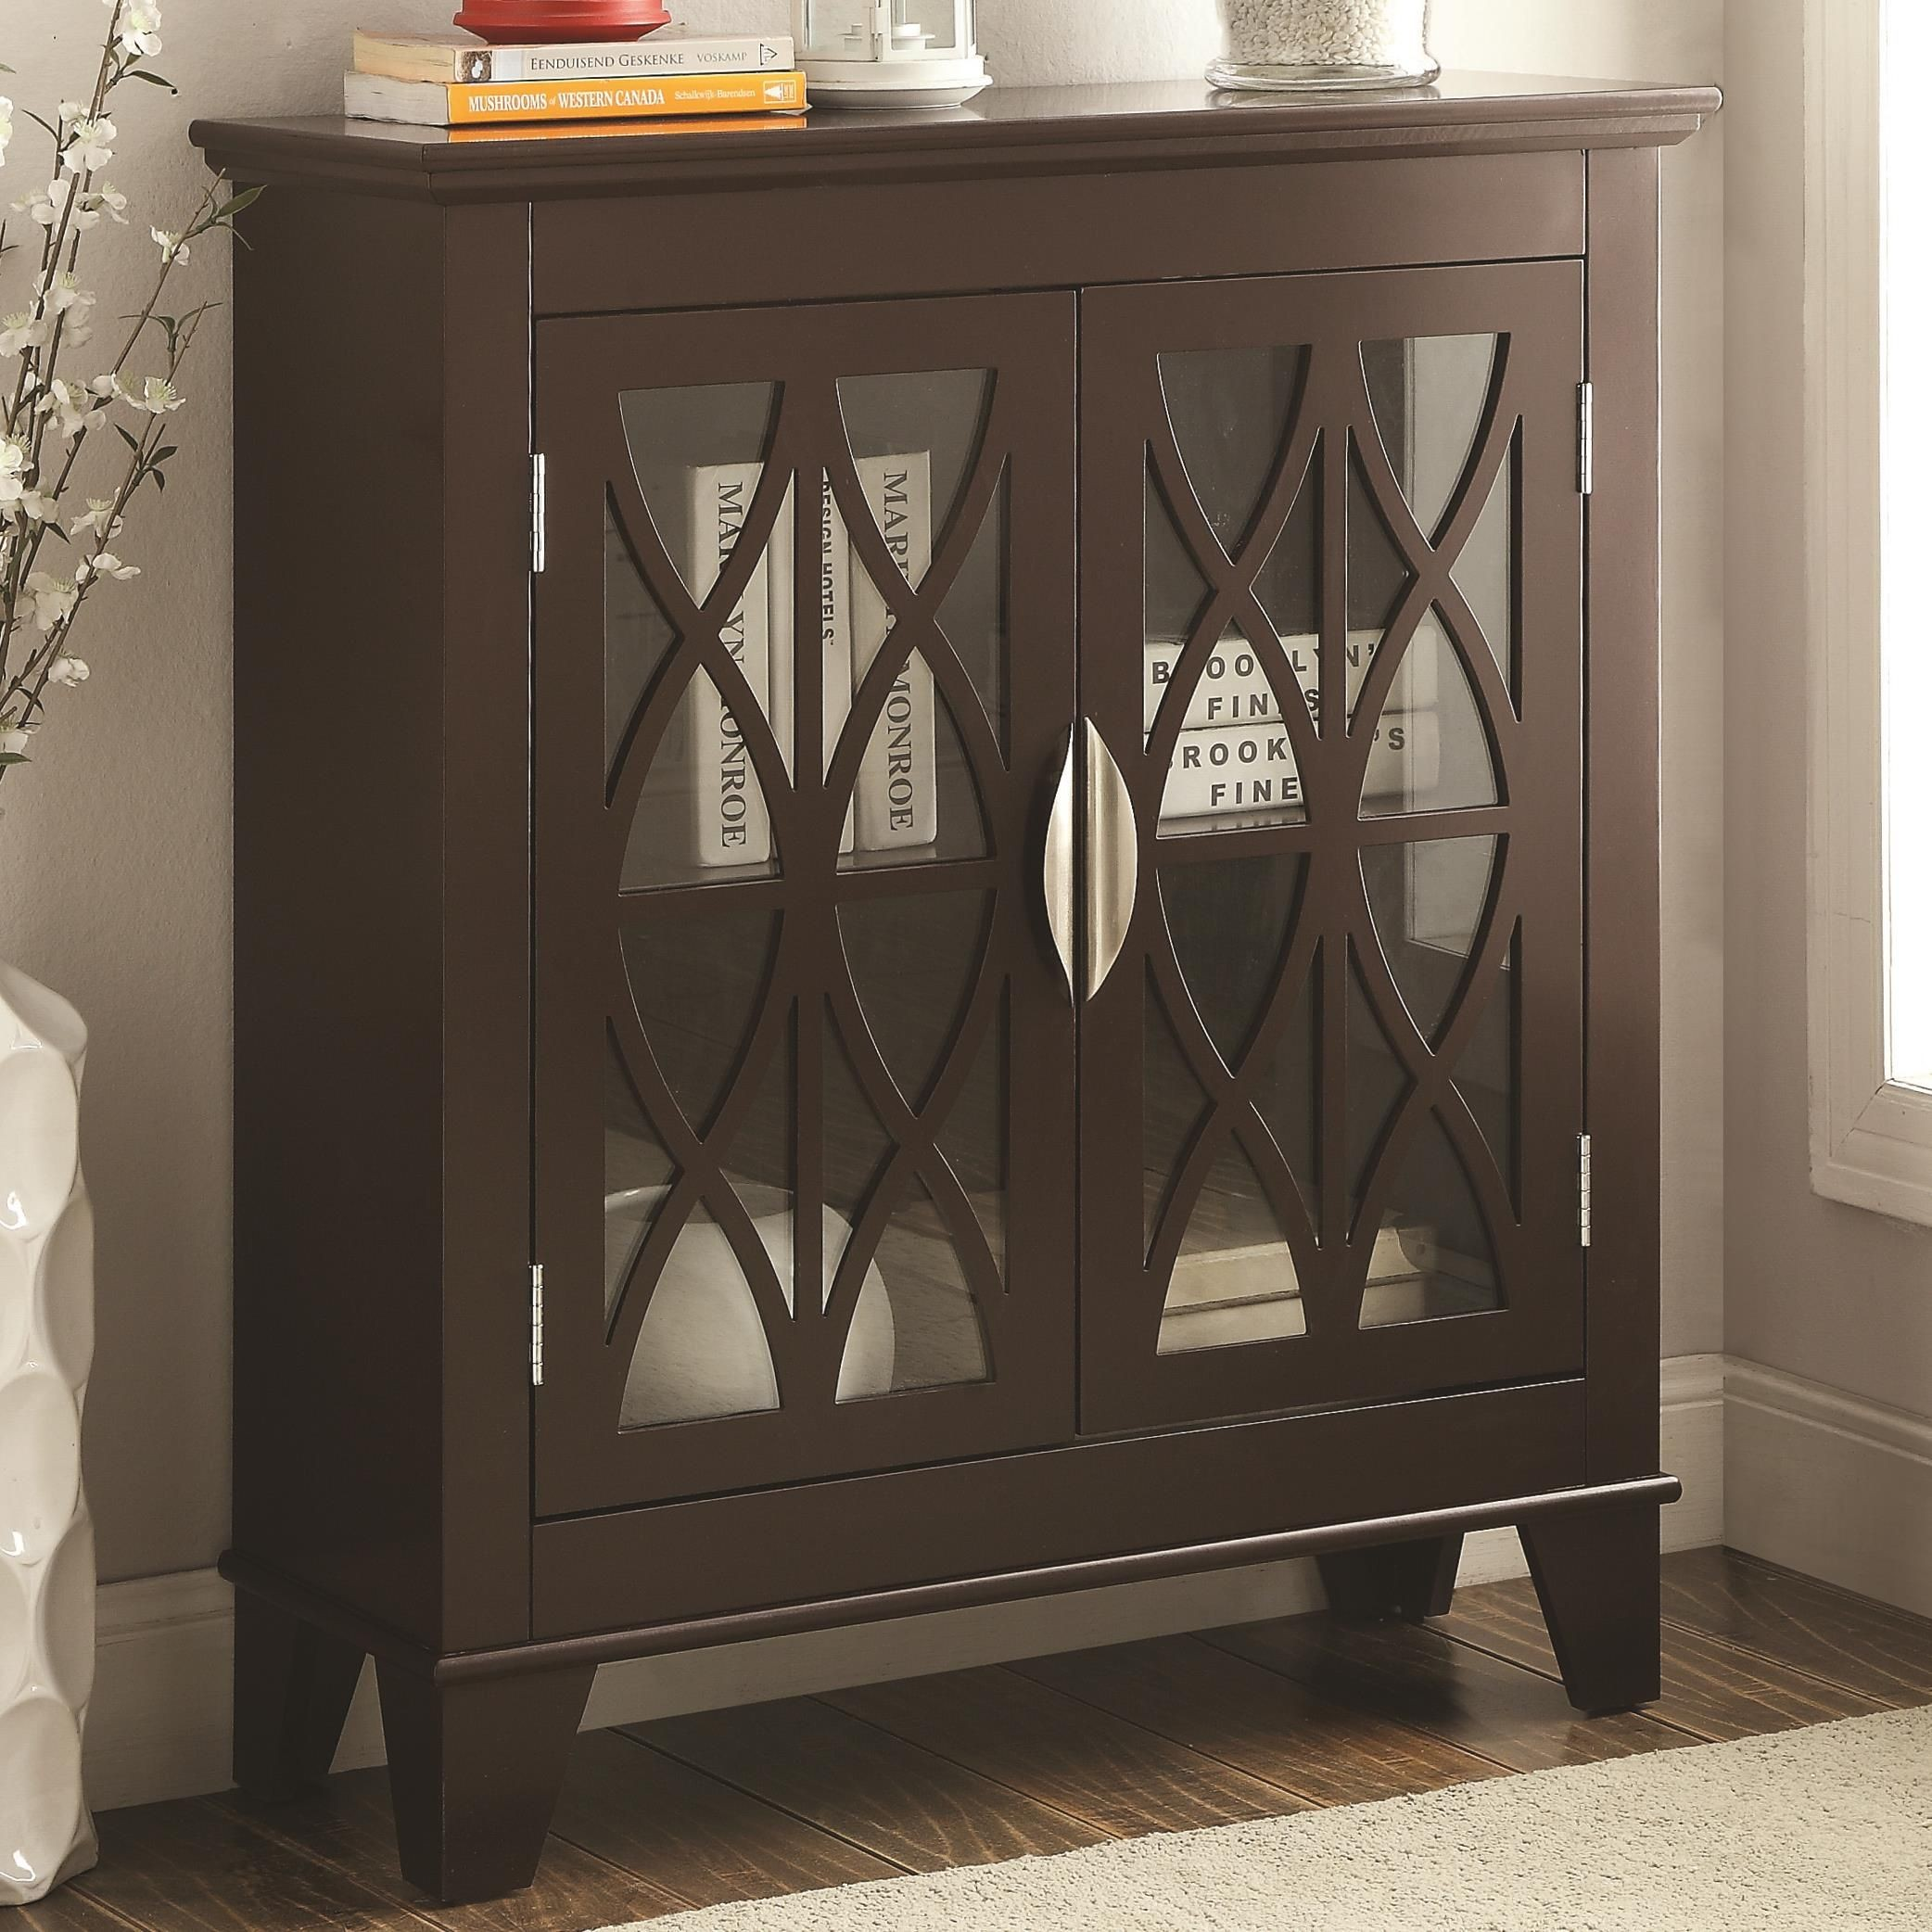 Accent cabinet with glass doors -